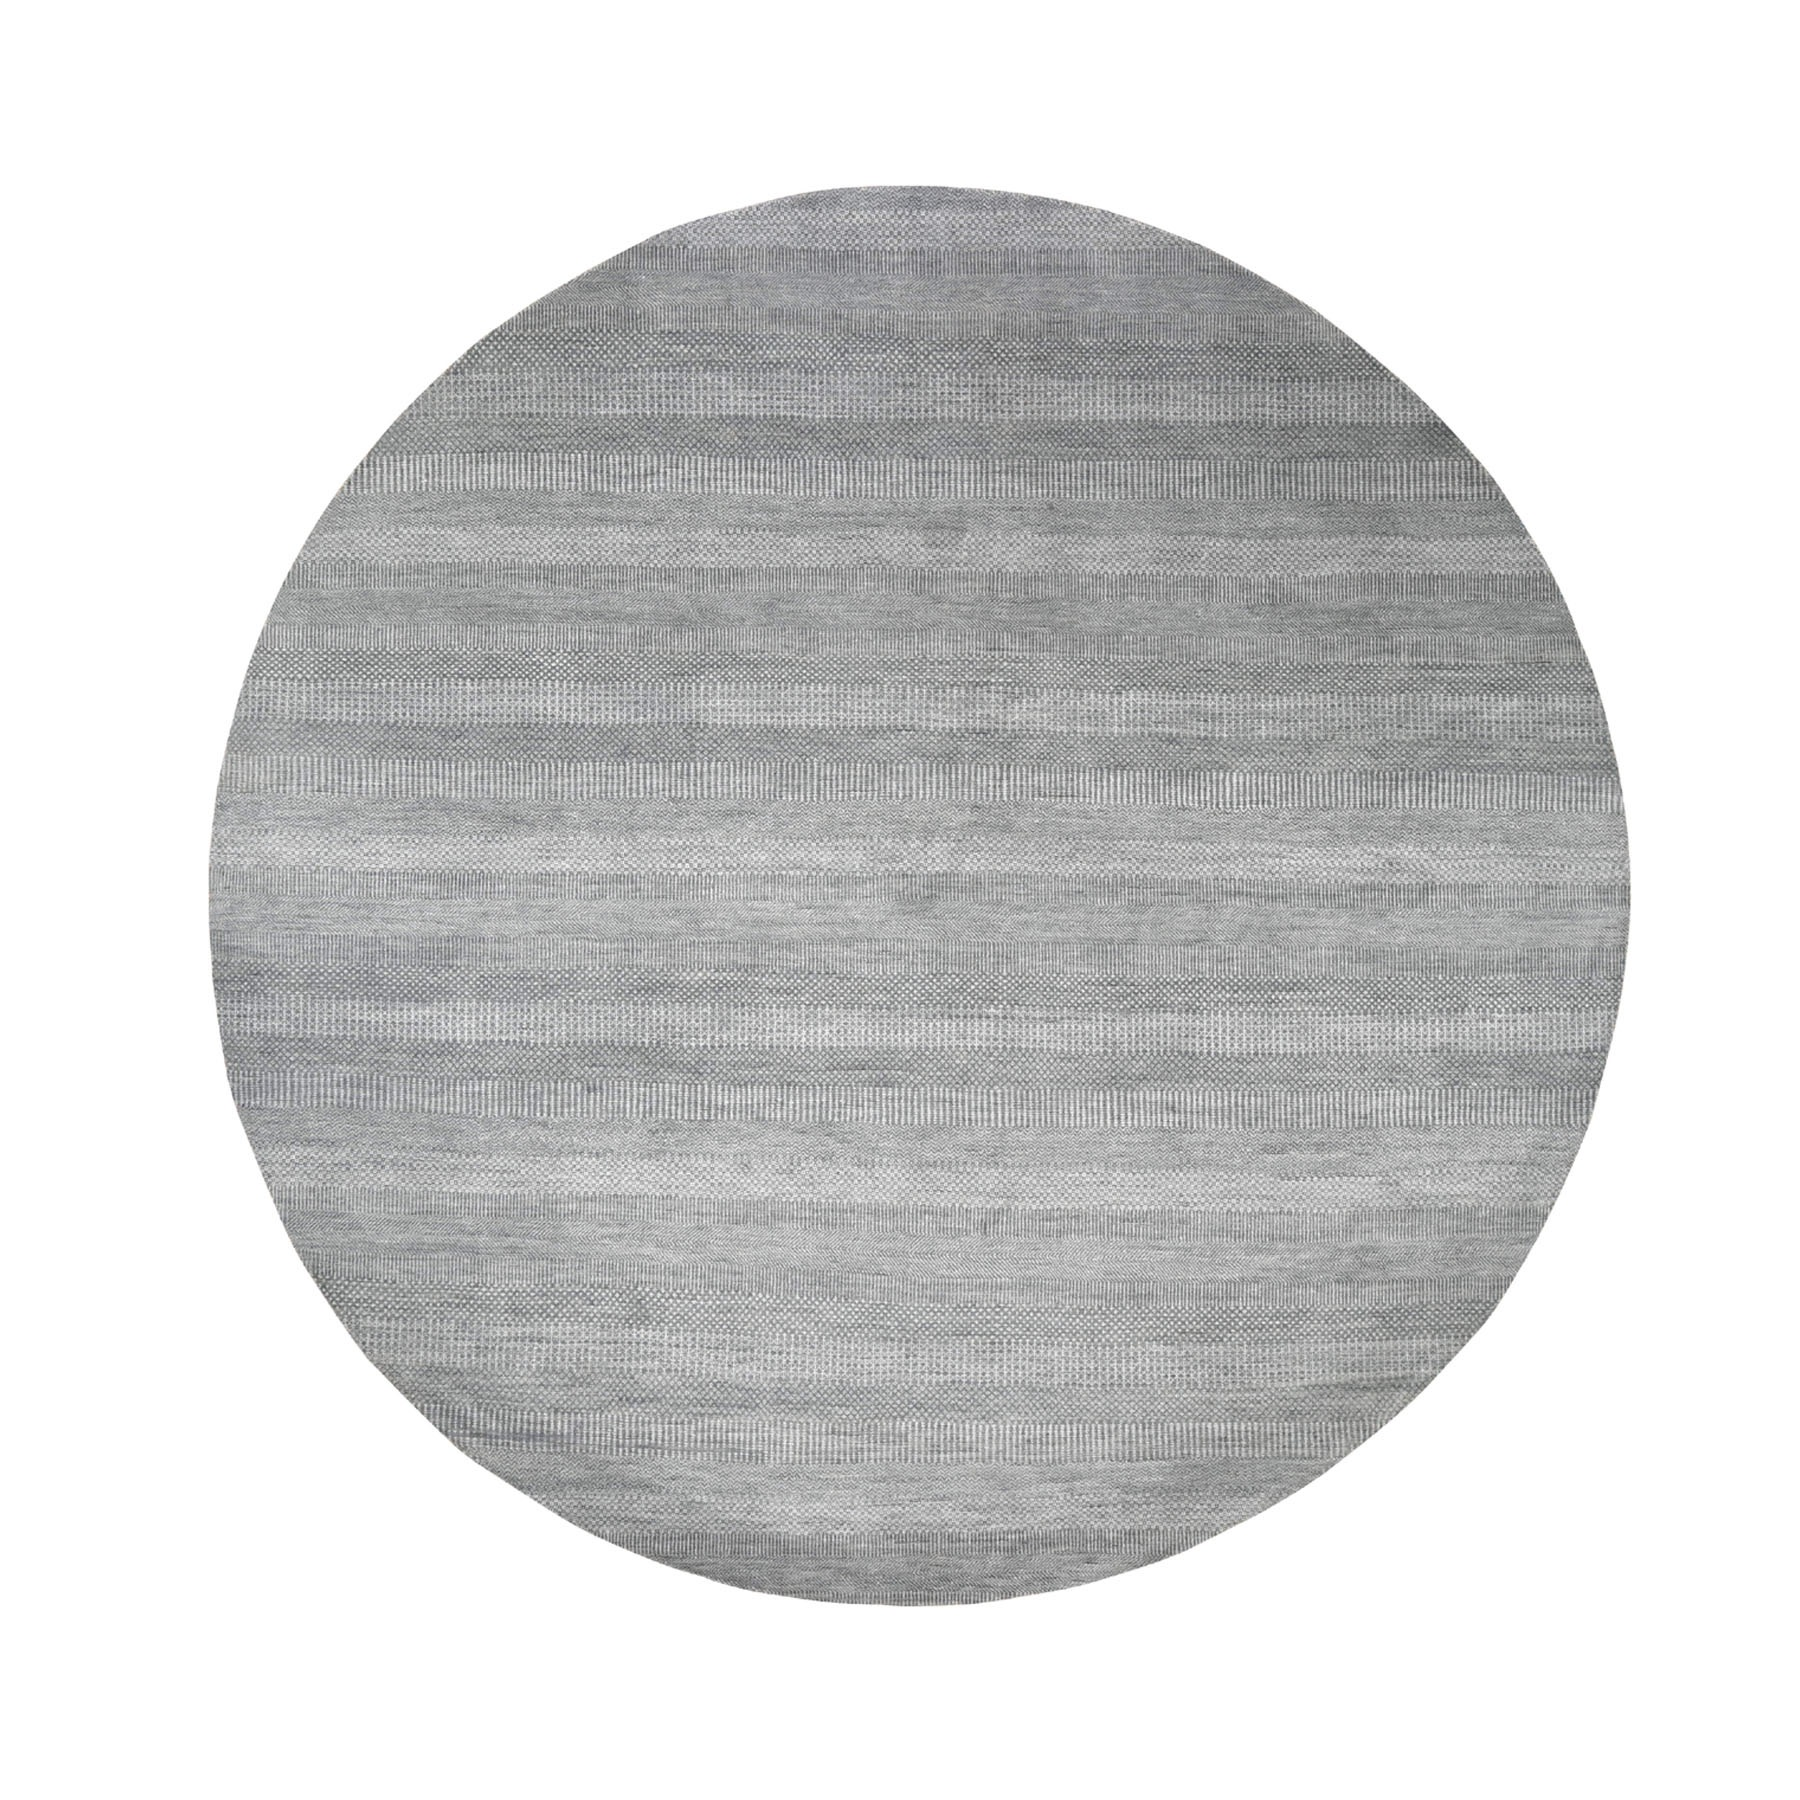 10'x10' Gray Round Wool and Silk Grass Design Hand Knotted Oriental Rug